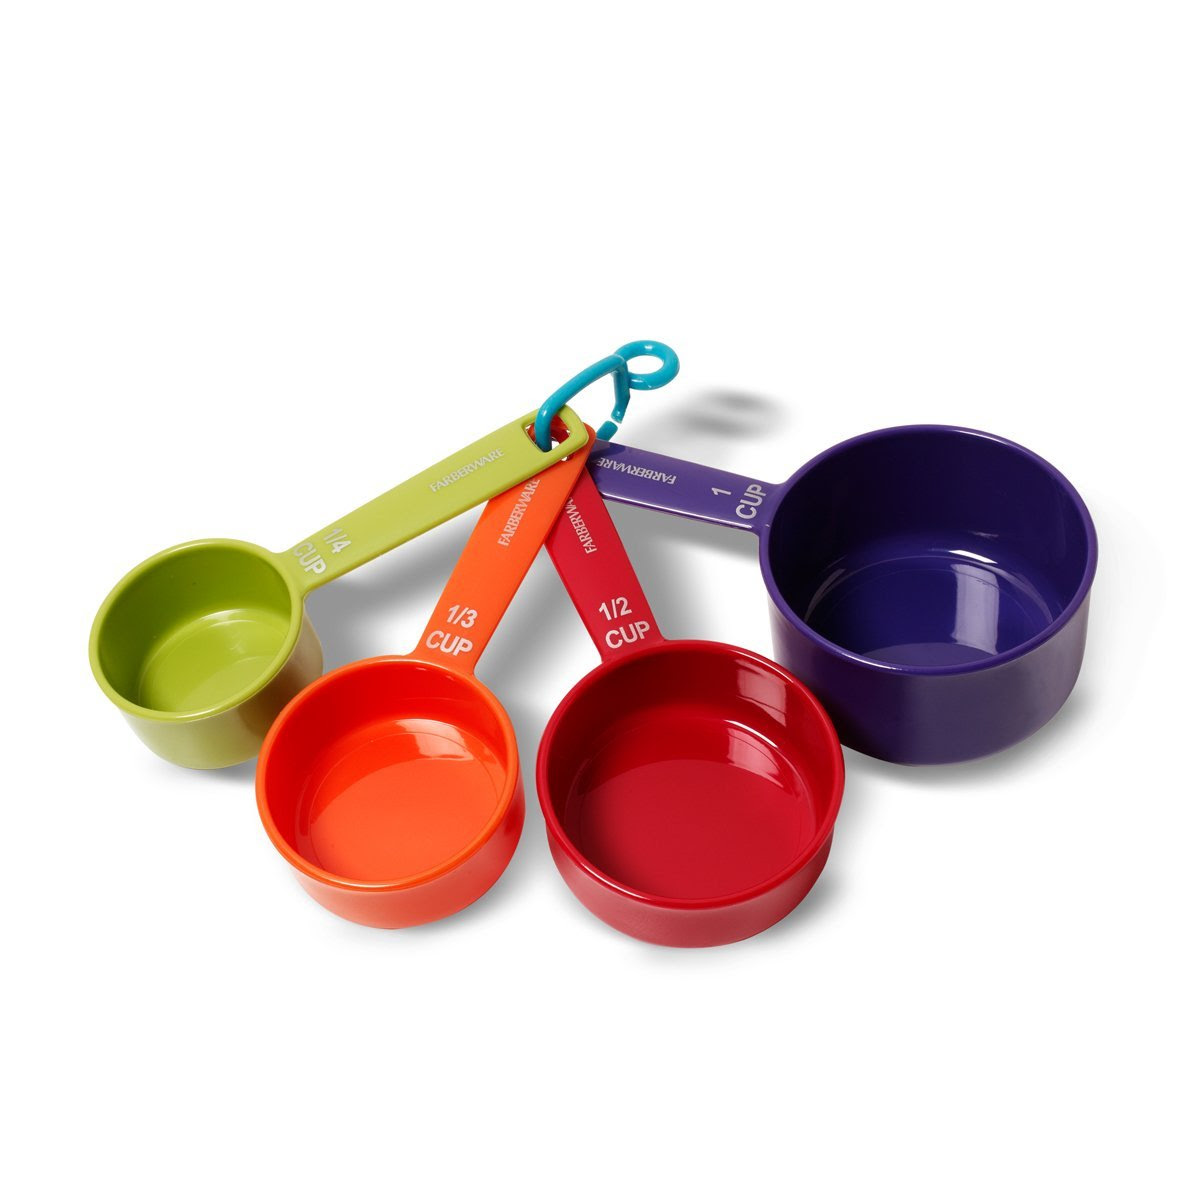 colorful nice wonderful amazing nice adorable measuring cup with small and big size concept made of plastic